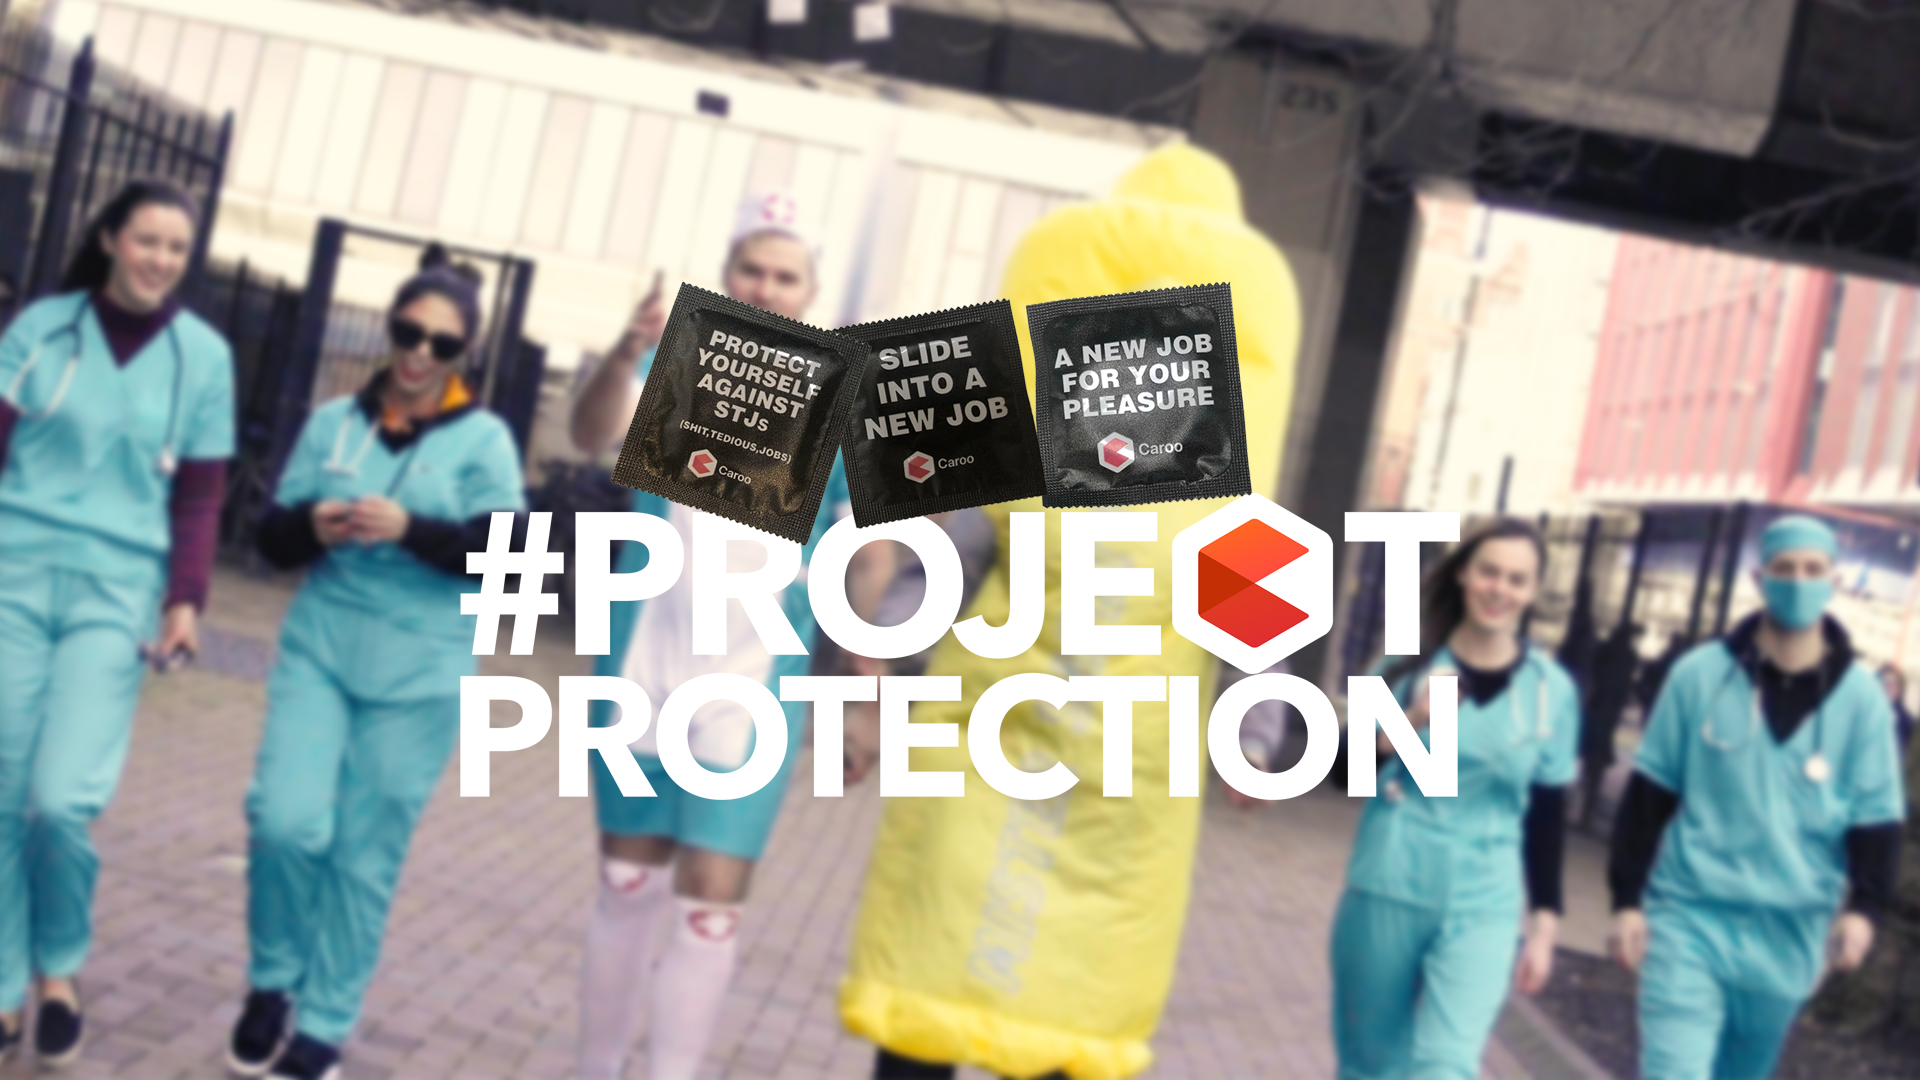 #ProjectProtection